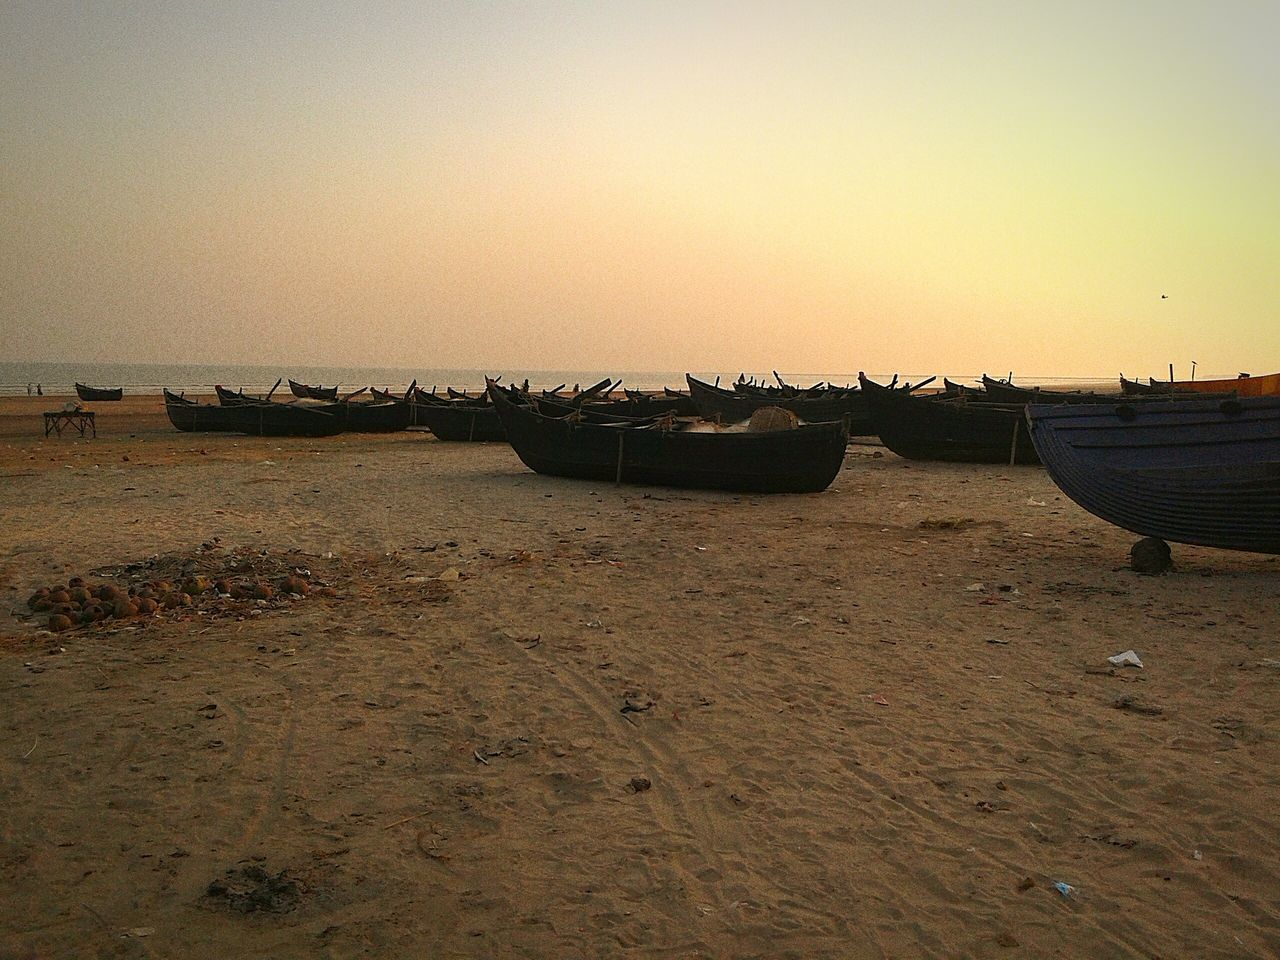 nautical vessel, boat, beach, transportation, water, moored, shore, nature, mode of transport, sunset, sand, scenics, sea, beauty in nature, clear sky, tranquility, horizon over water, sky, tranquil scene, no people, outdoors, longtail boat, day